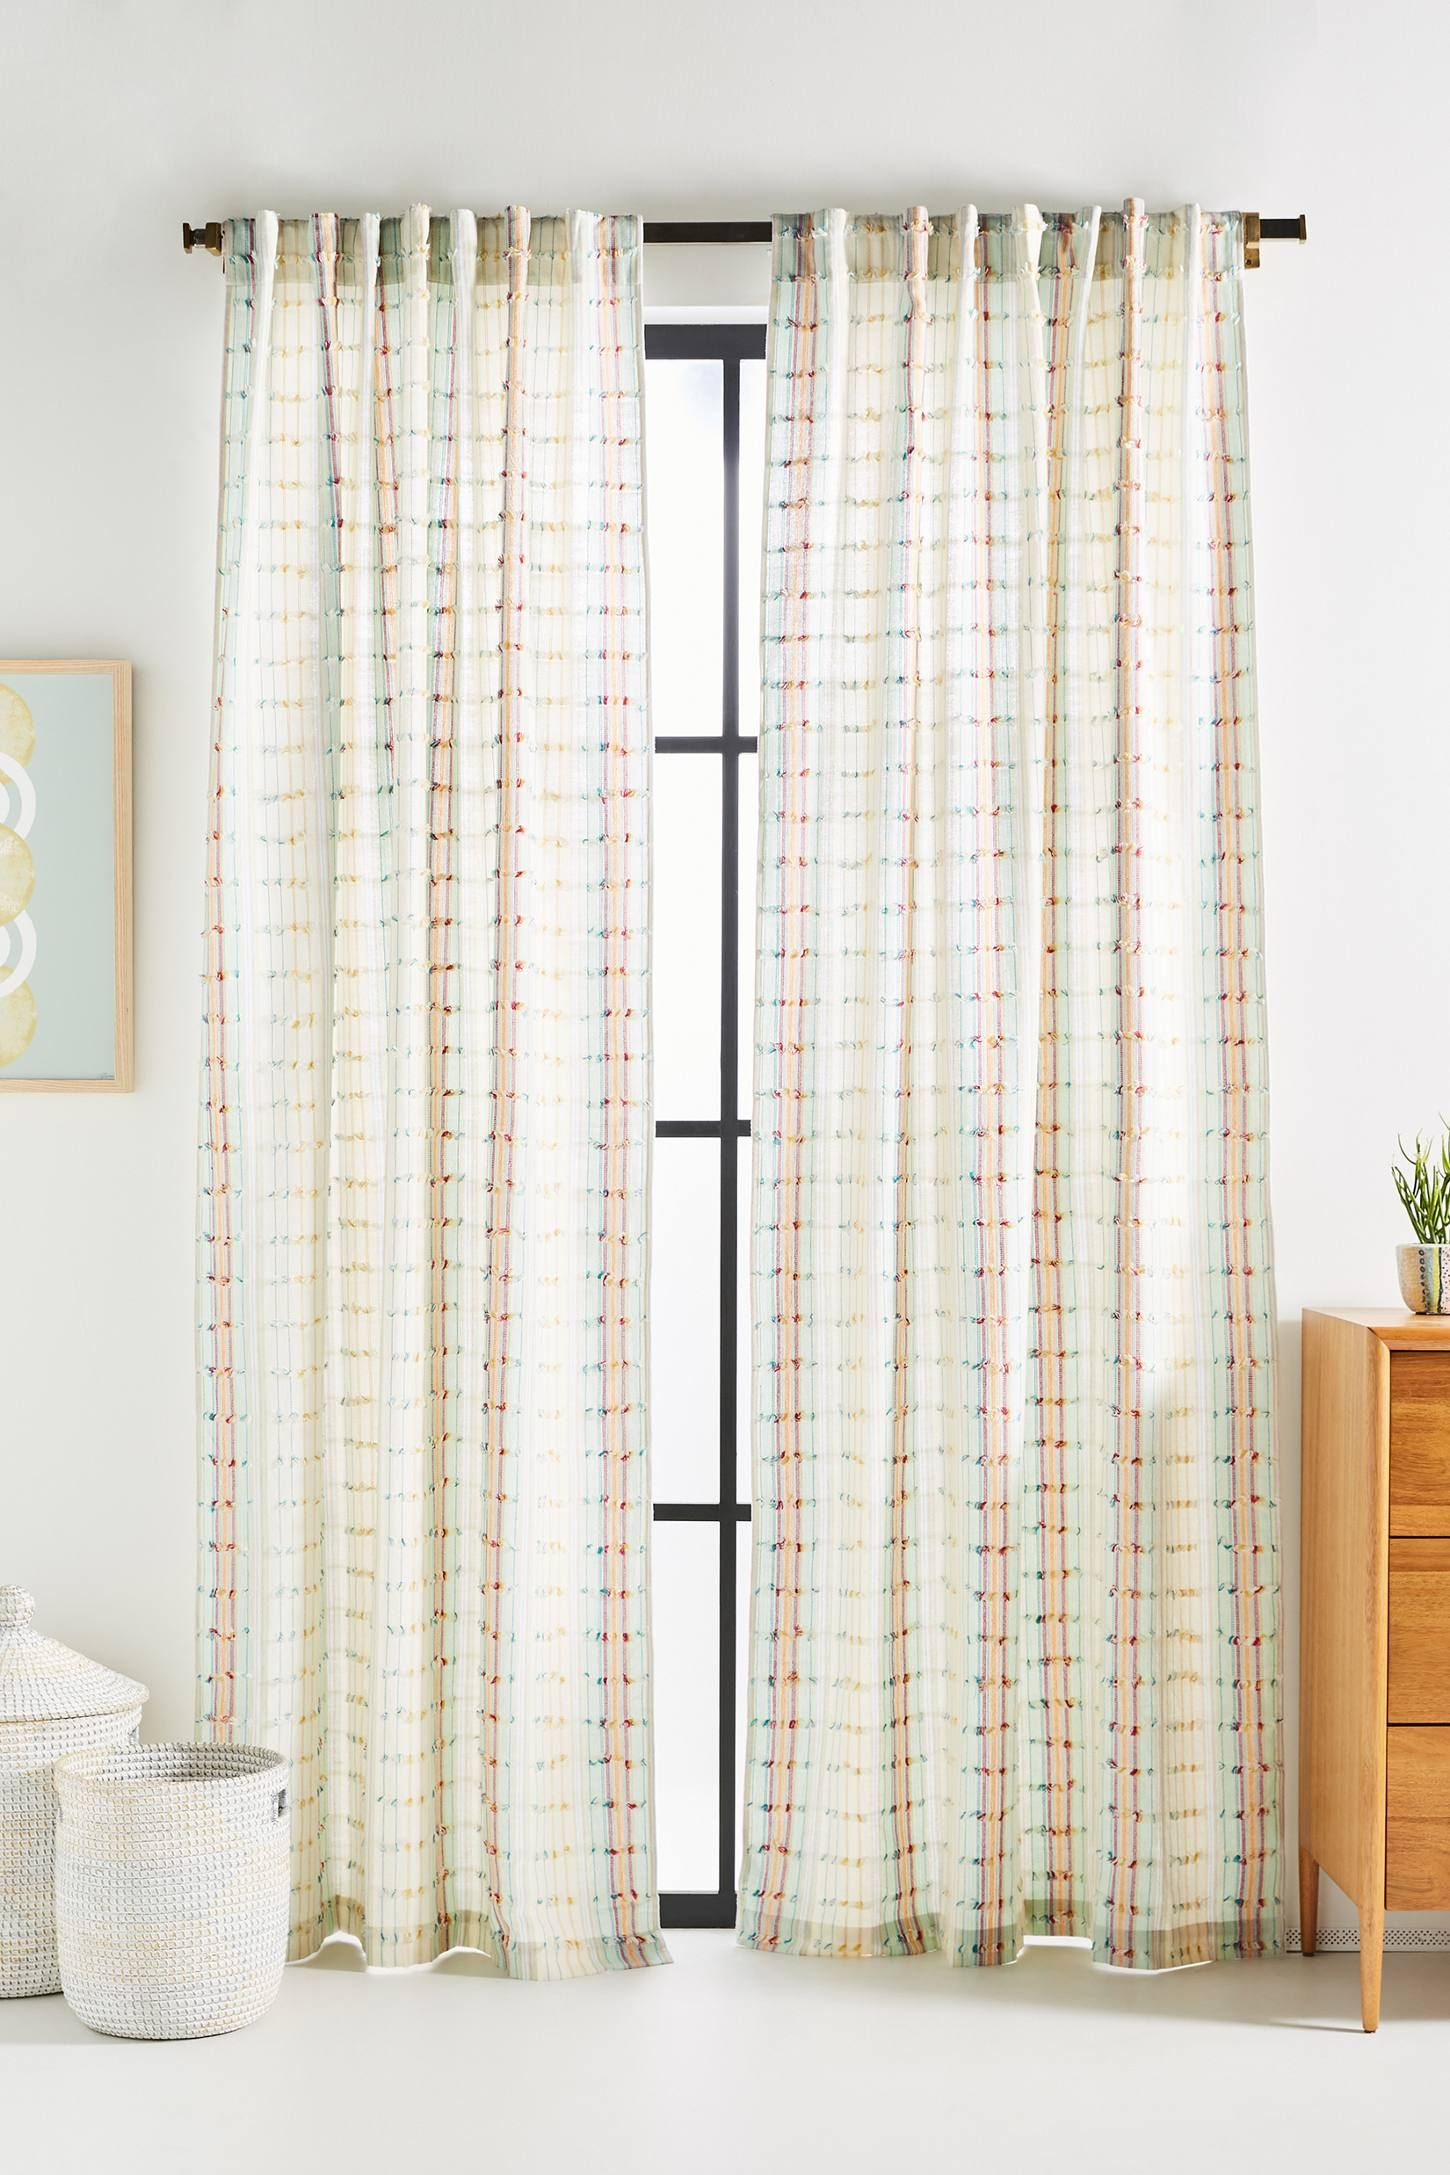 Woven Sonia Curtain Curtains Drapes And Blinds Tassel Curtains